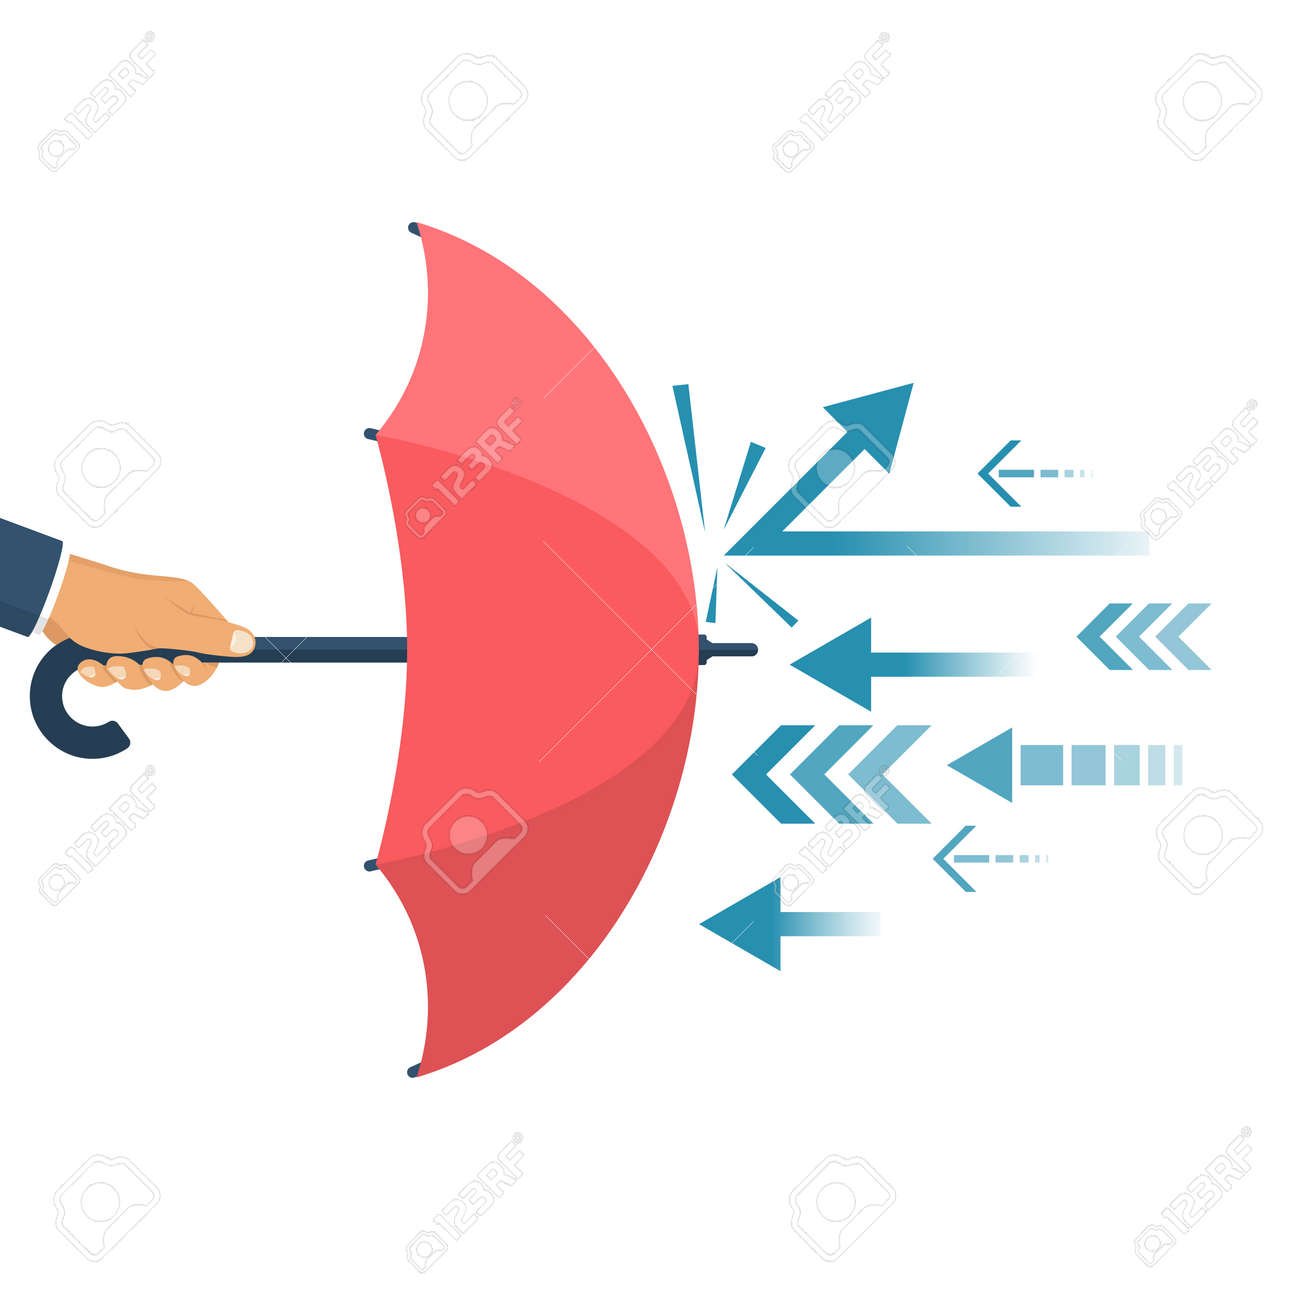 Protected from attack, concept. Defender business metaphor. Financial security. Businessman is holding an umbrella as a shield reflecting the attacks. - 72310661